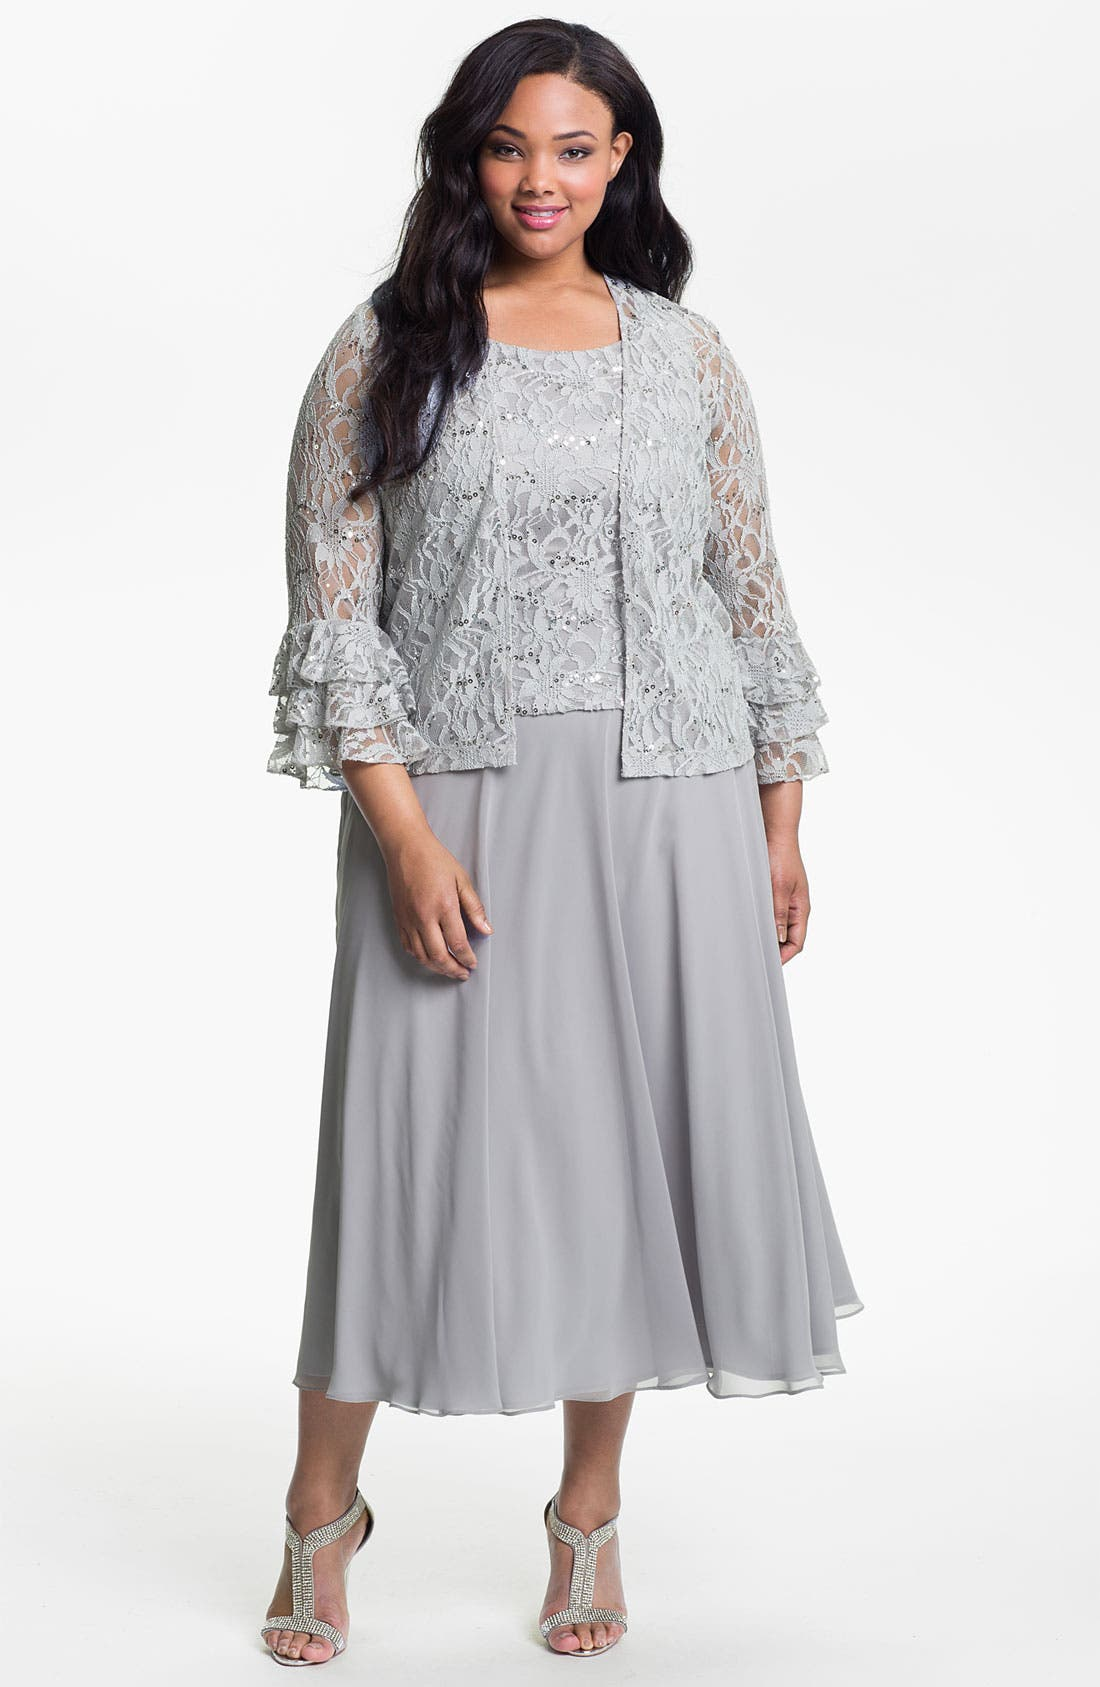 Alternate Image 1 Selected - Eliza J Lace & Chiffon Mock Two Piece Dress & Jacket (Plus)